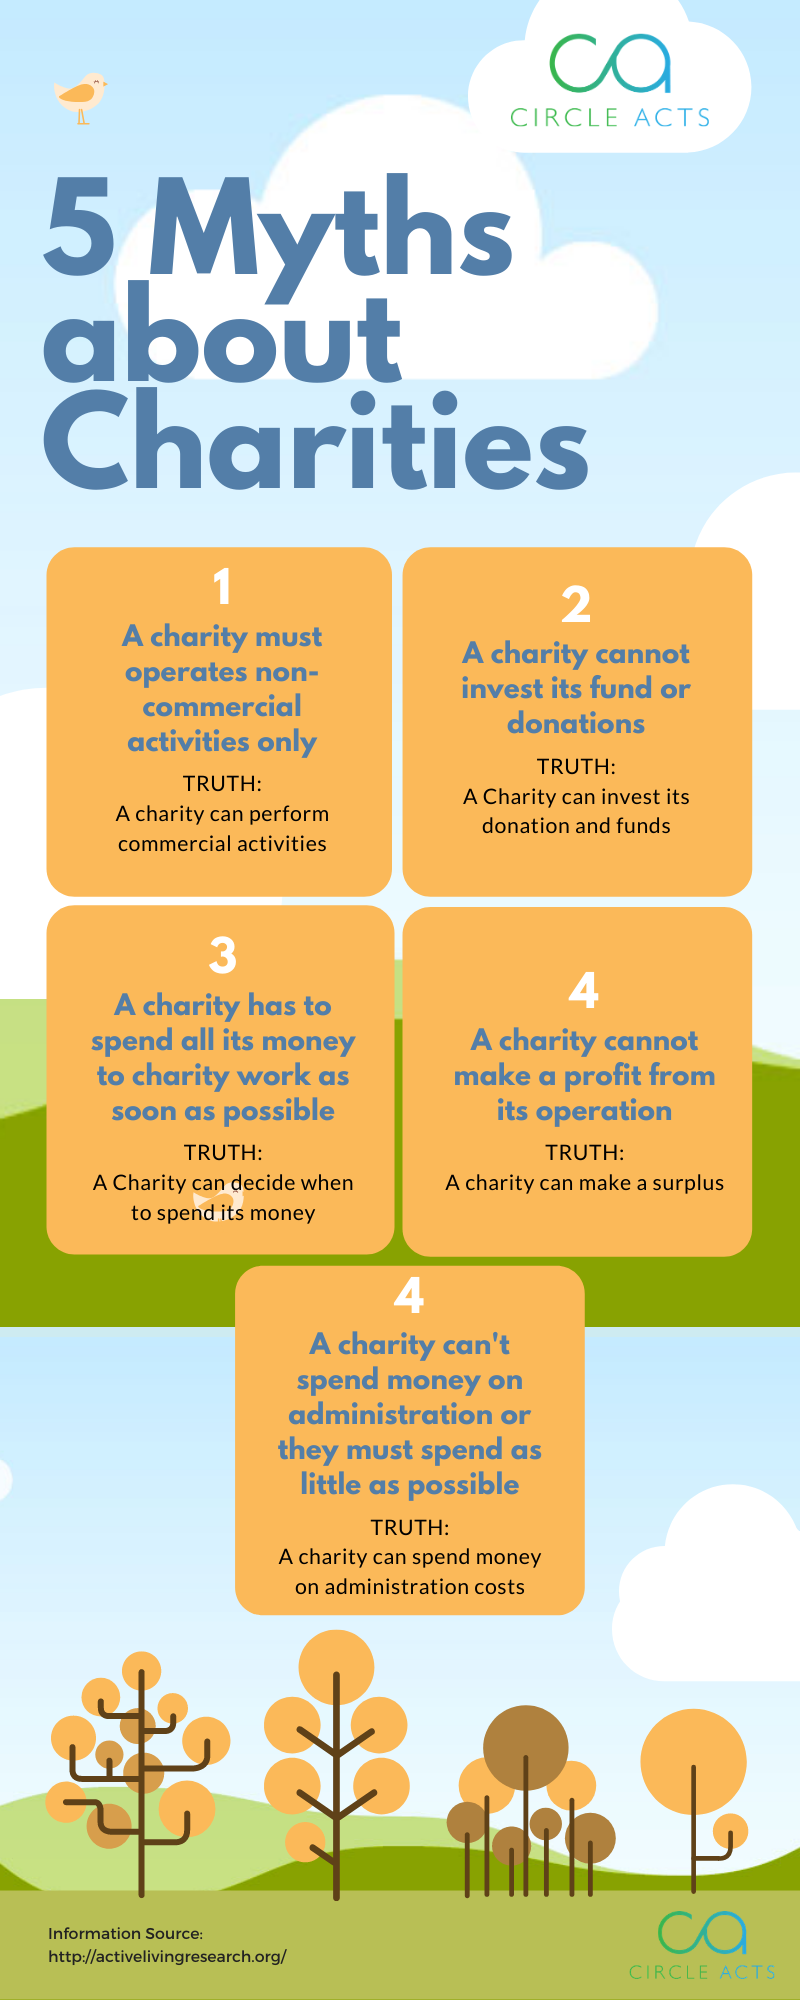 Charity Myths, misconceptions, misunderstanding